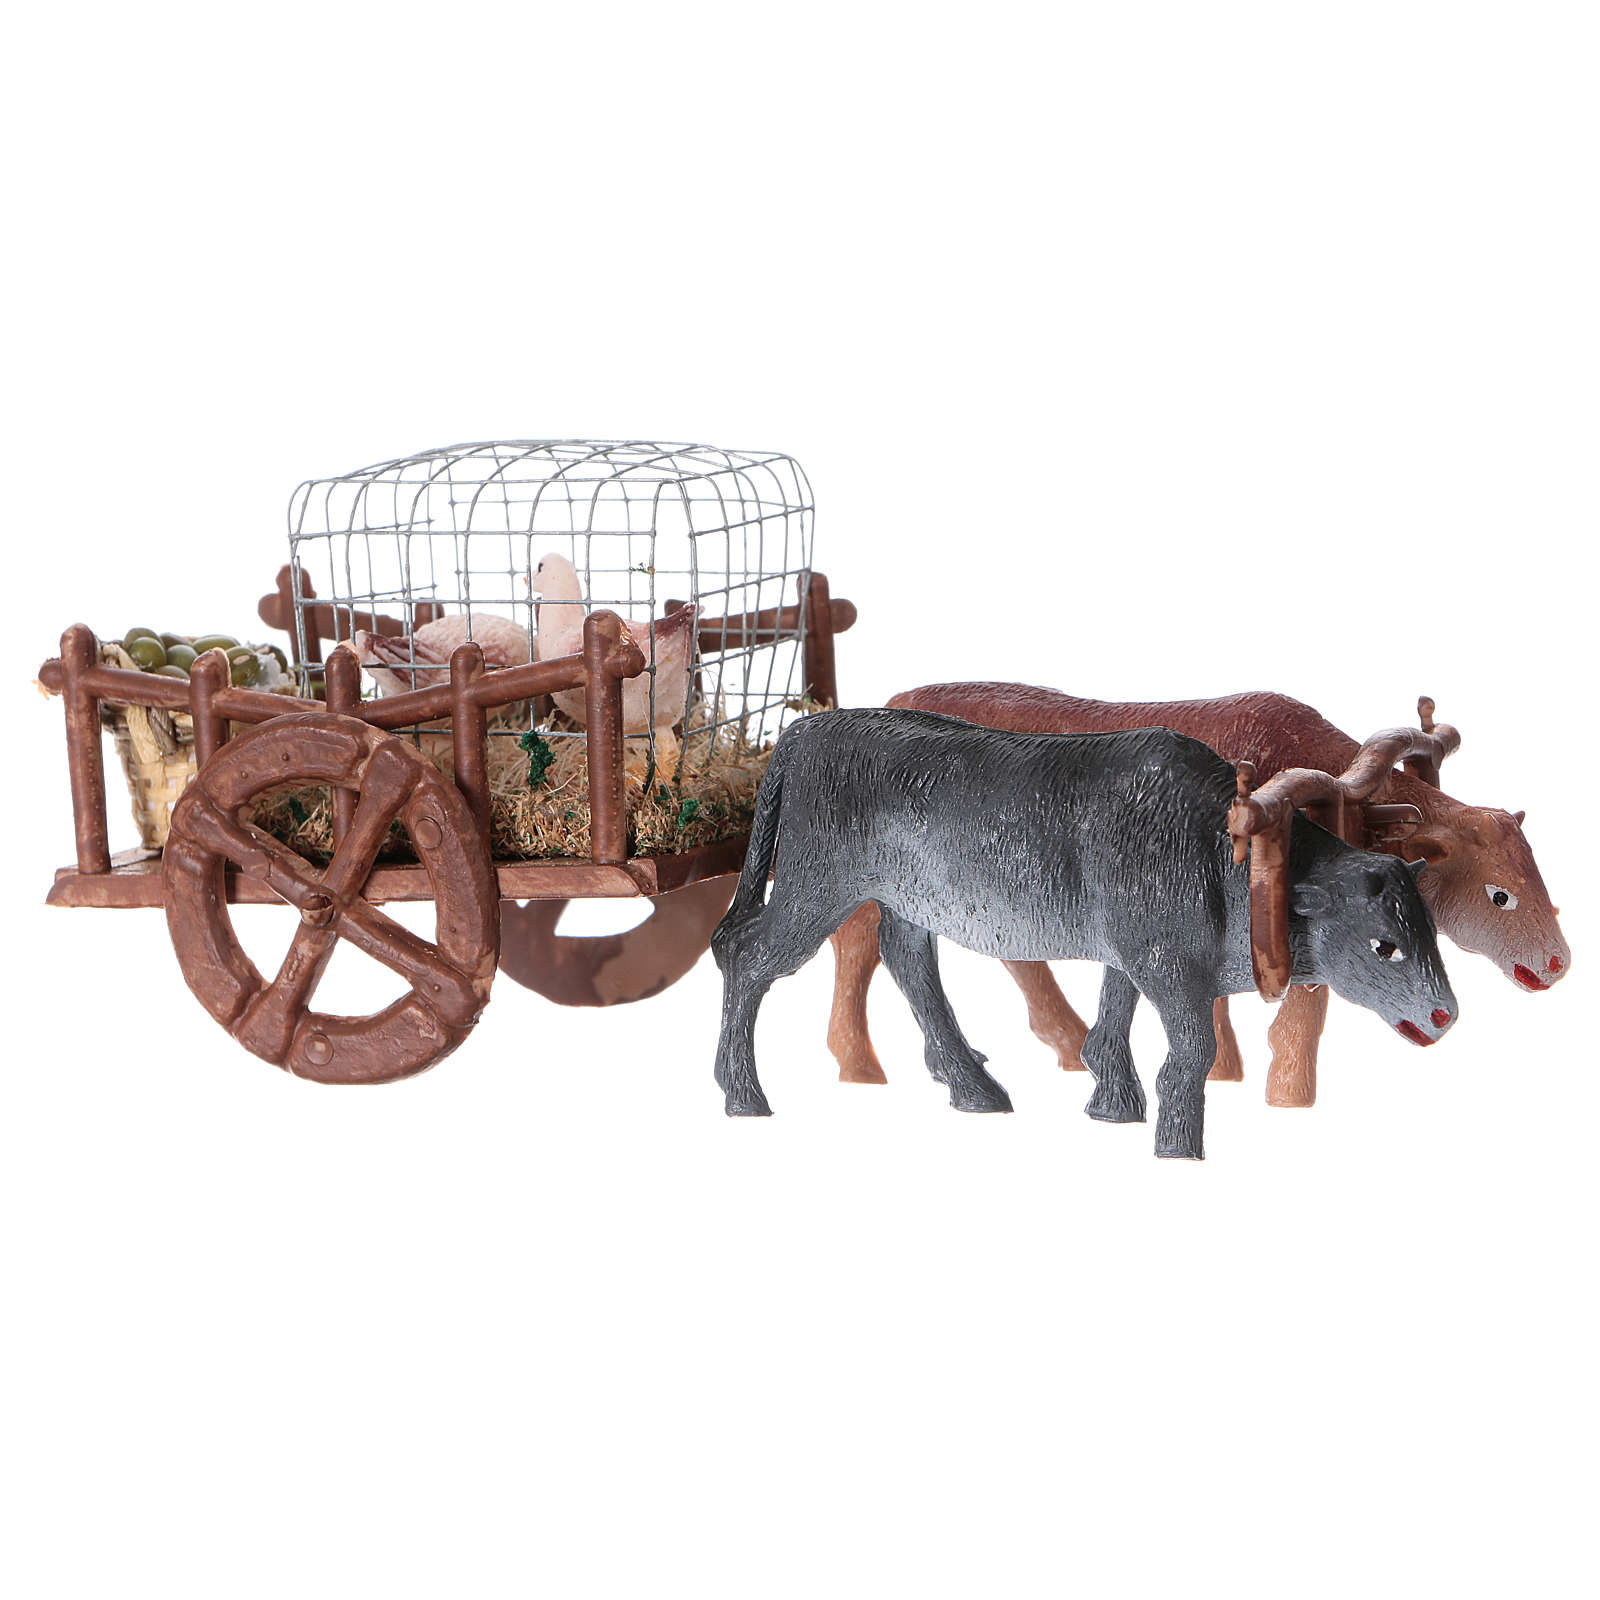 Wagon with geese and eggs 5x15x5 cm, for 5 cm nativity 4